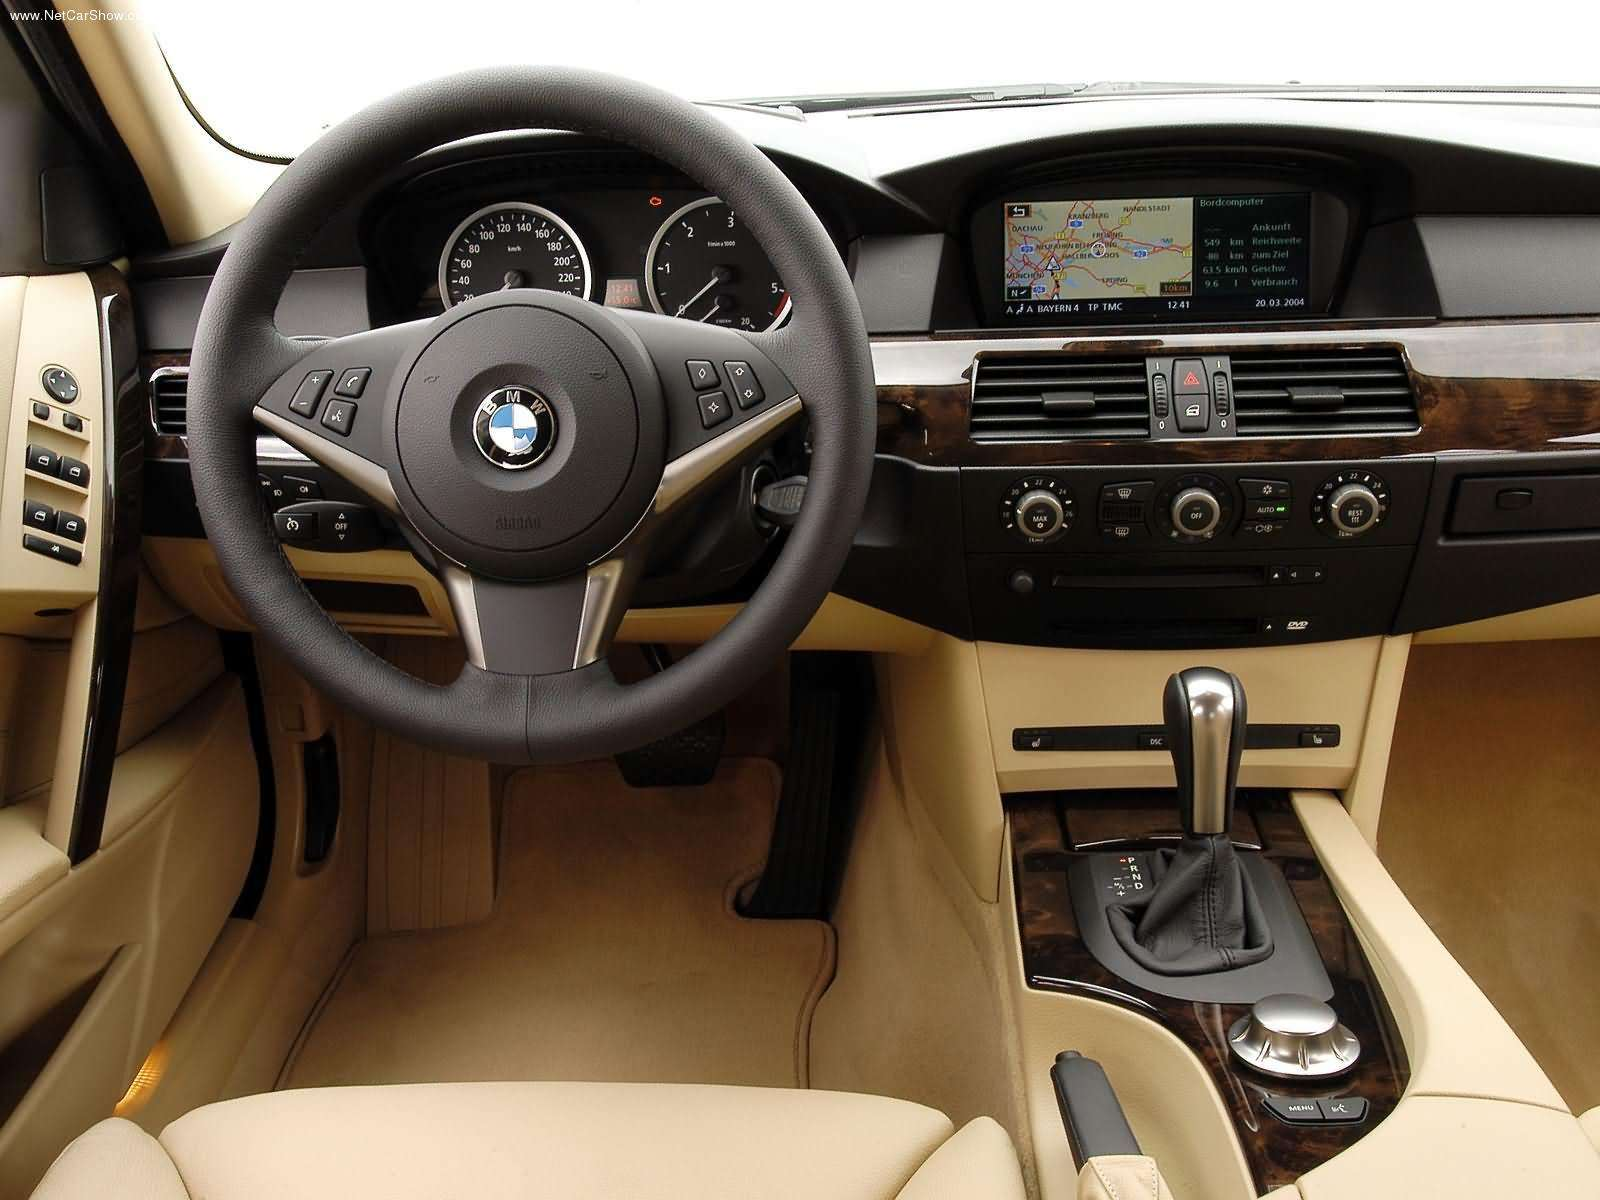 BMW 5 series Wagon 2003